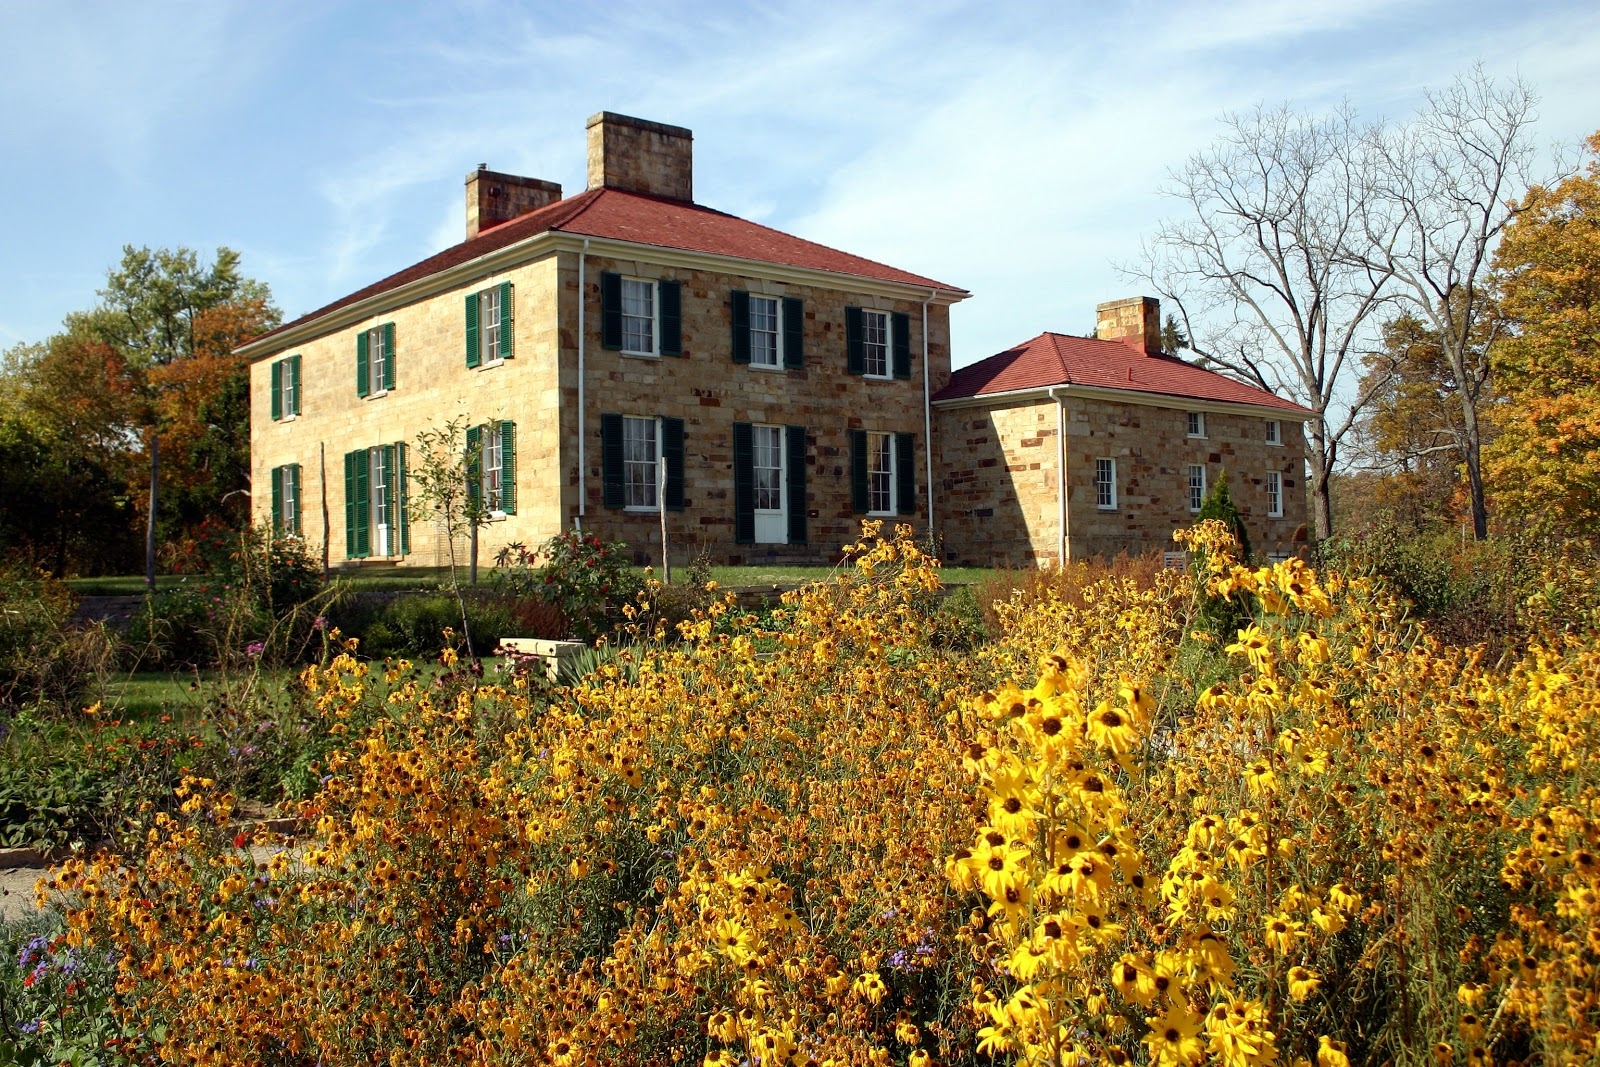 bush with sunflowers in front of mansion